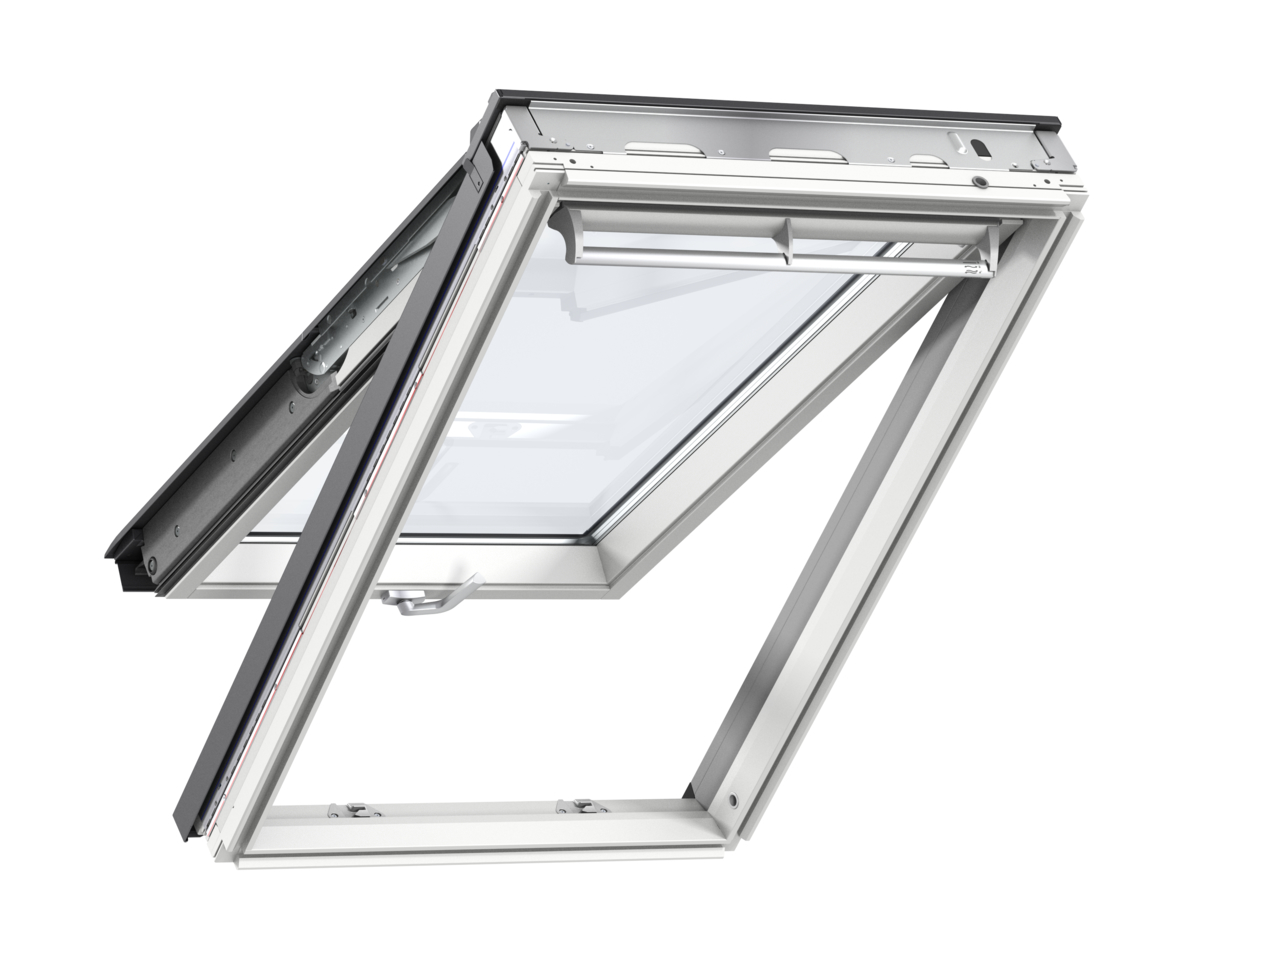 Velux GPL UK04 1340 x 980mm Top Hung 60Pane Roof Window - White Painted